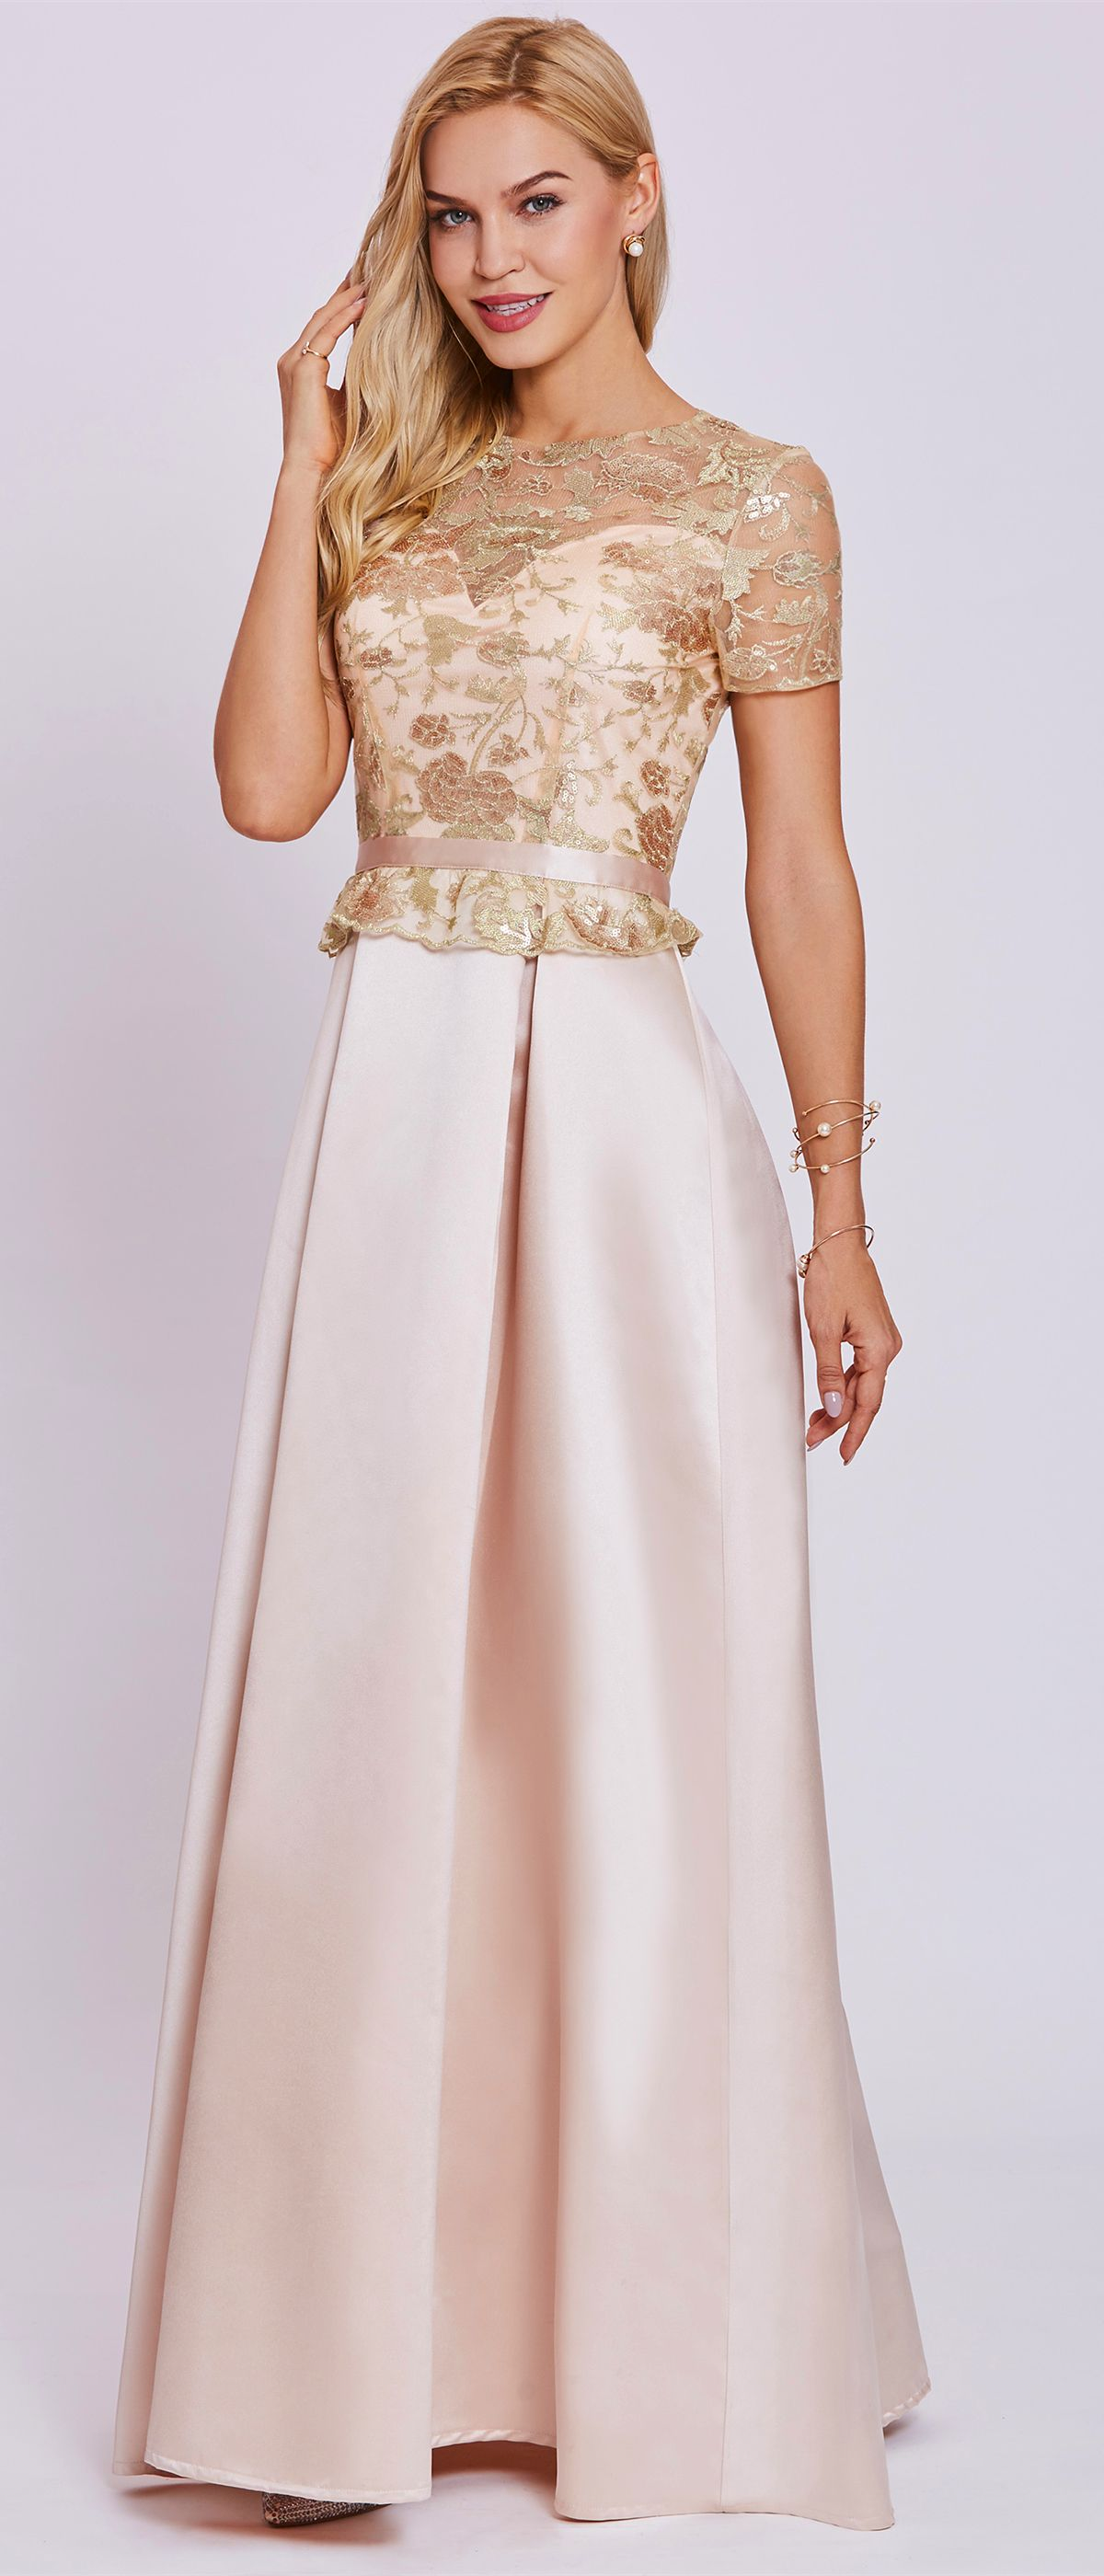 Scoop neck short sleeves a line evening dress in ball gowns